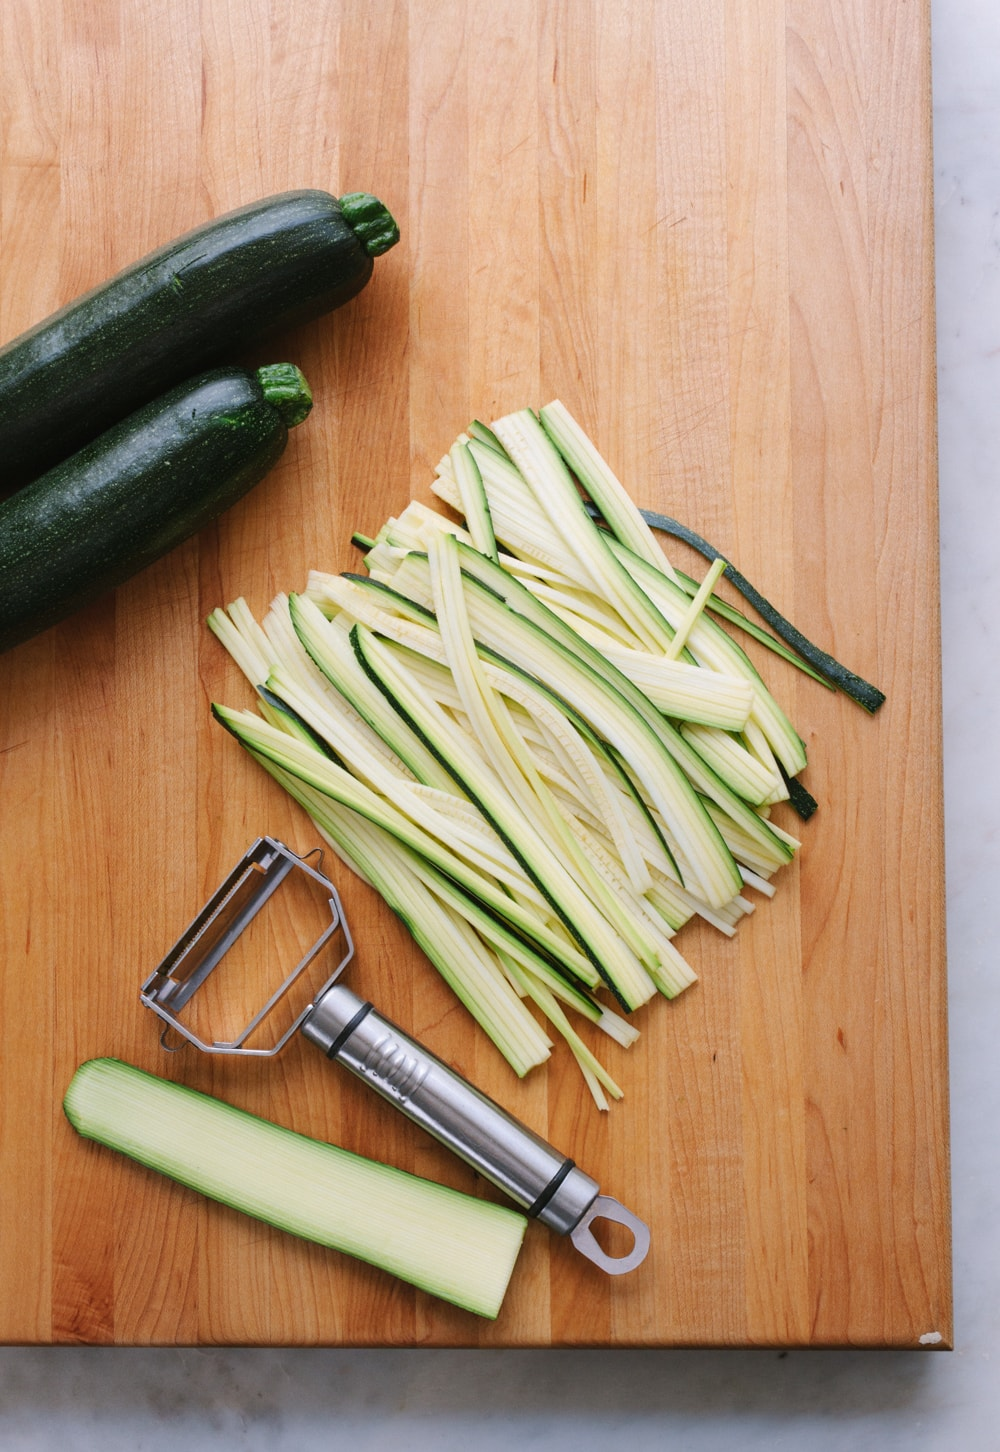 top down view of zucchini made into zucchini pasta noodles using a julienne tool on a wooden cutting board